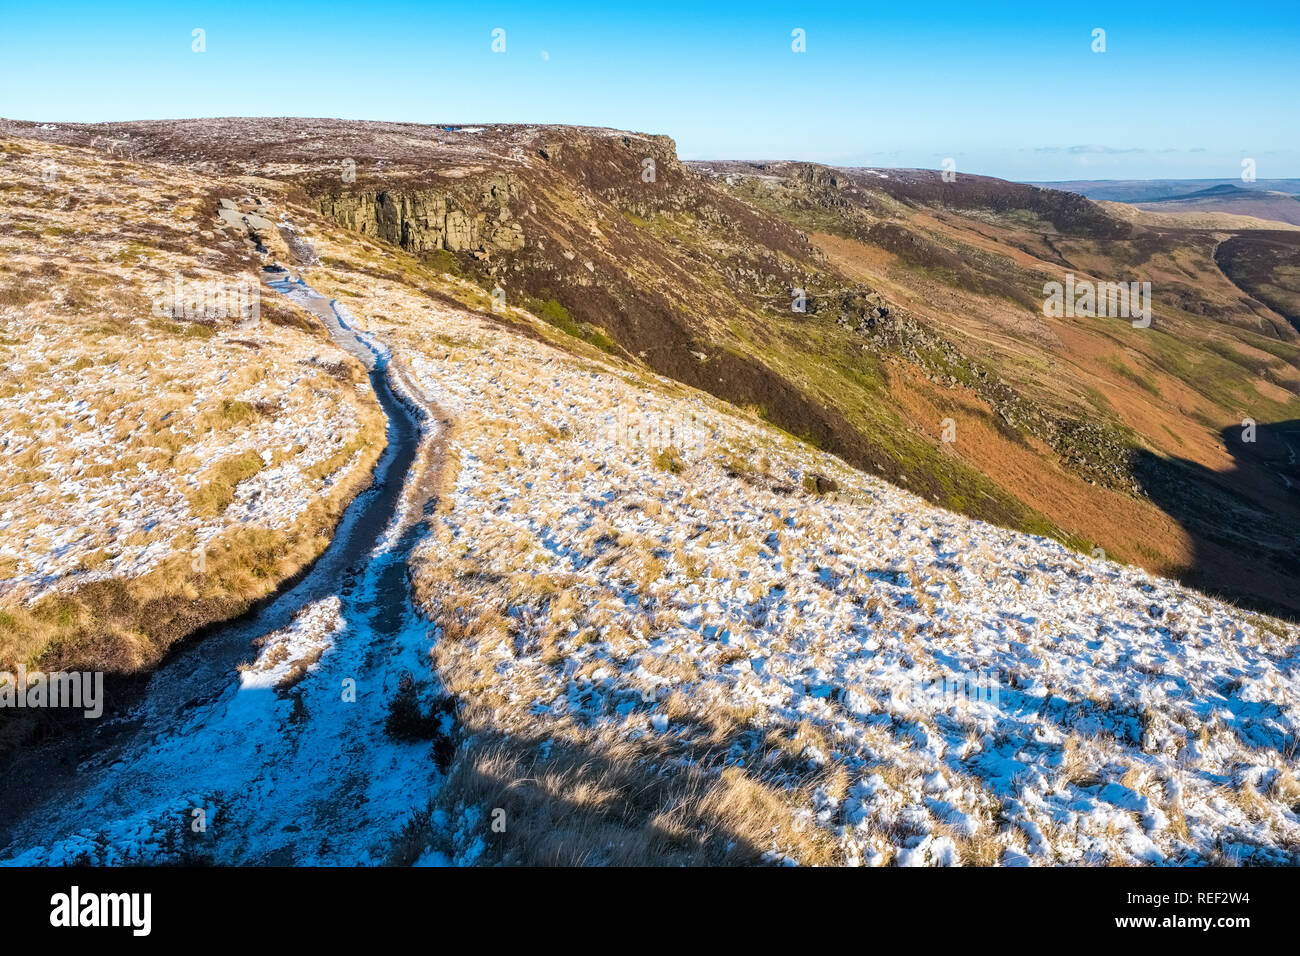 The southern edge of Kinder Scout in the Peak District National Park,Derbyshire,UK - Stock Image